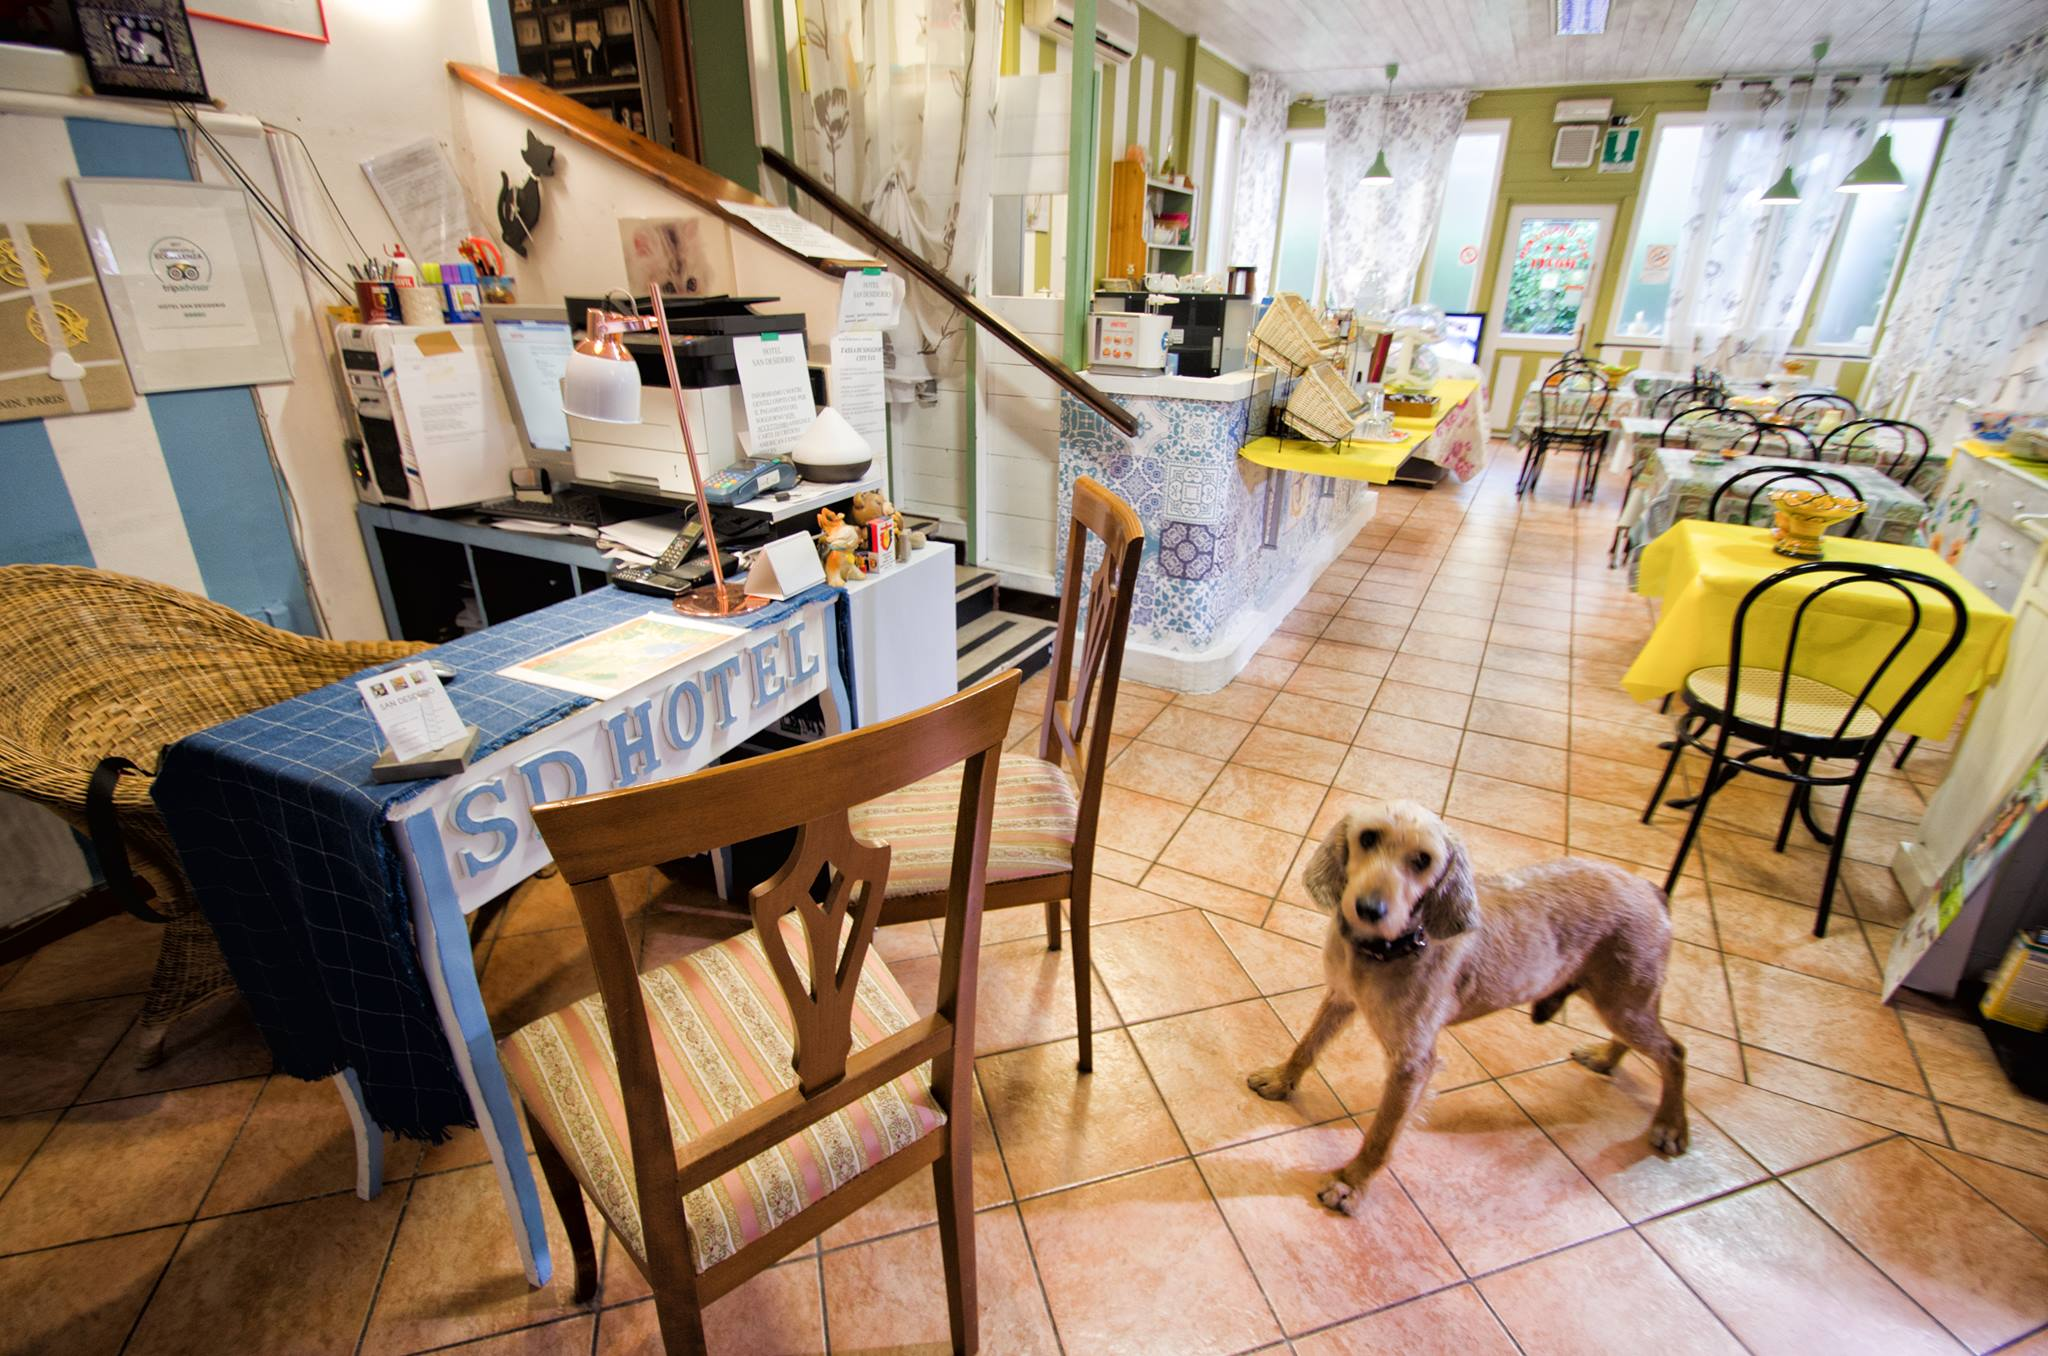 Idefix the dog - Hotel San Desiderio Rapallo - Cheap accommodation